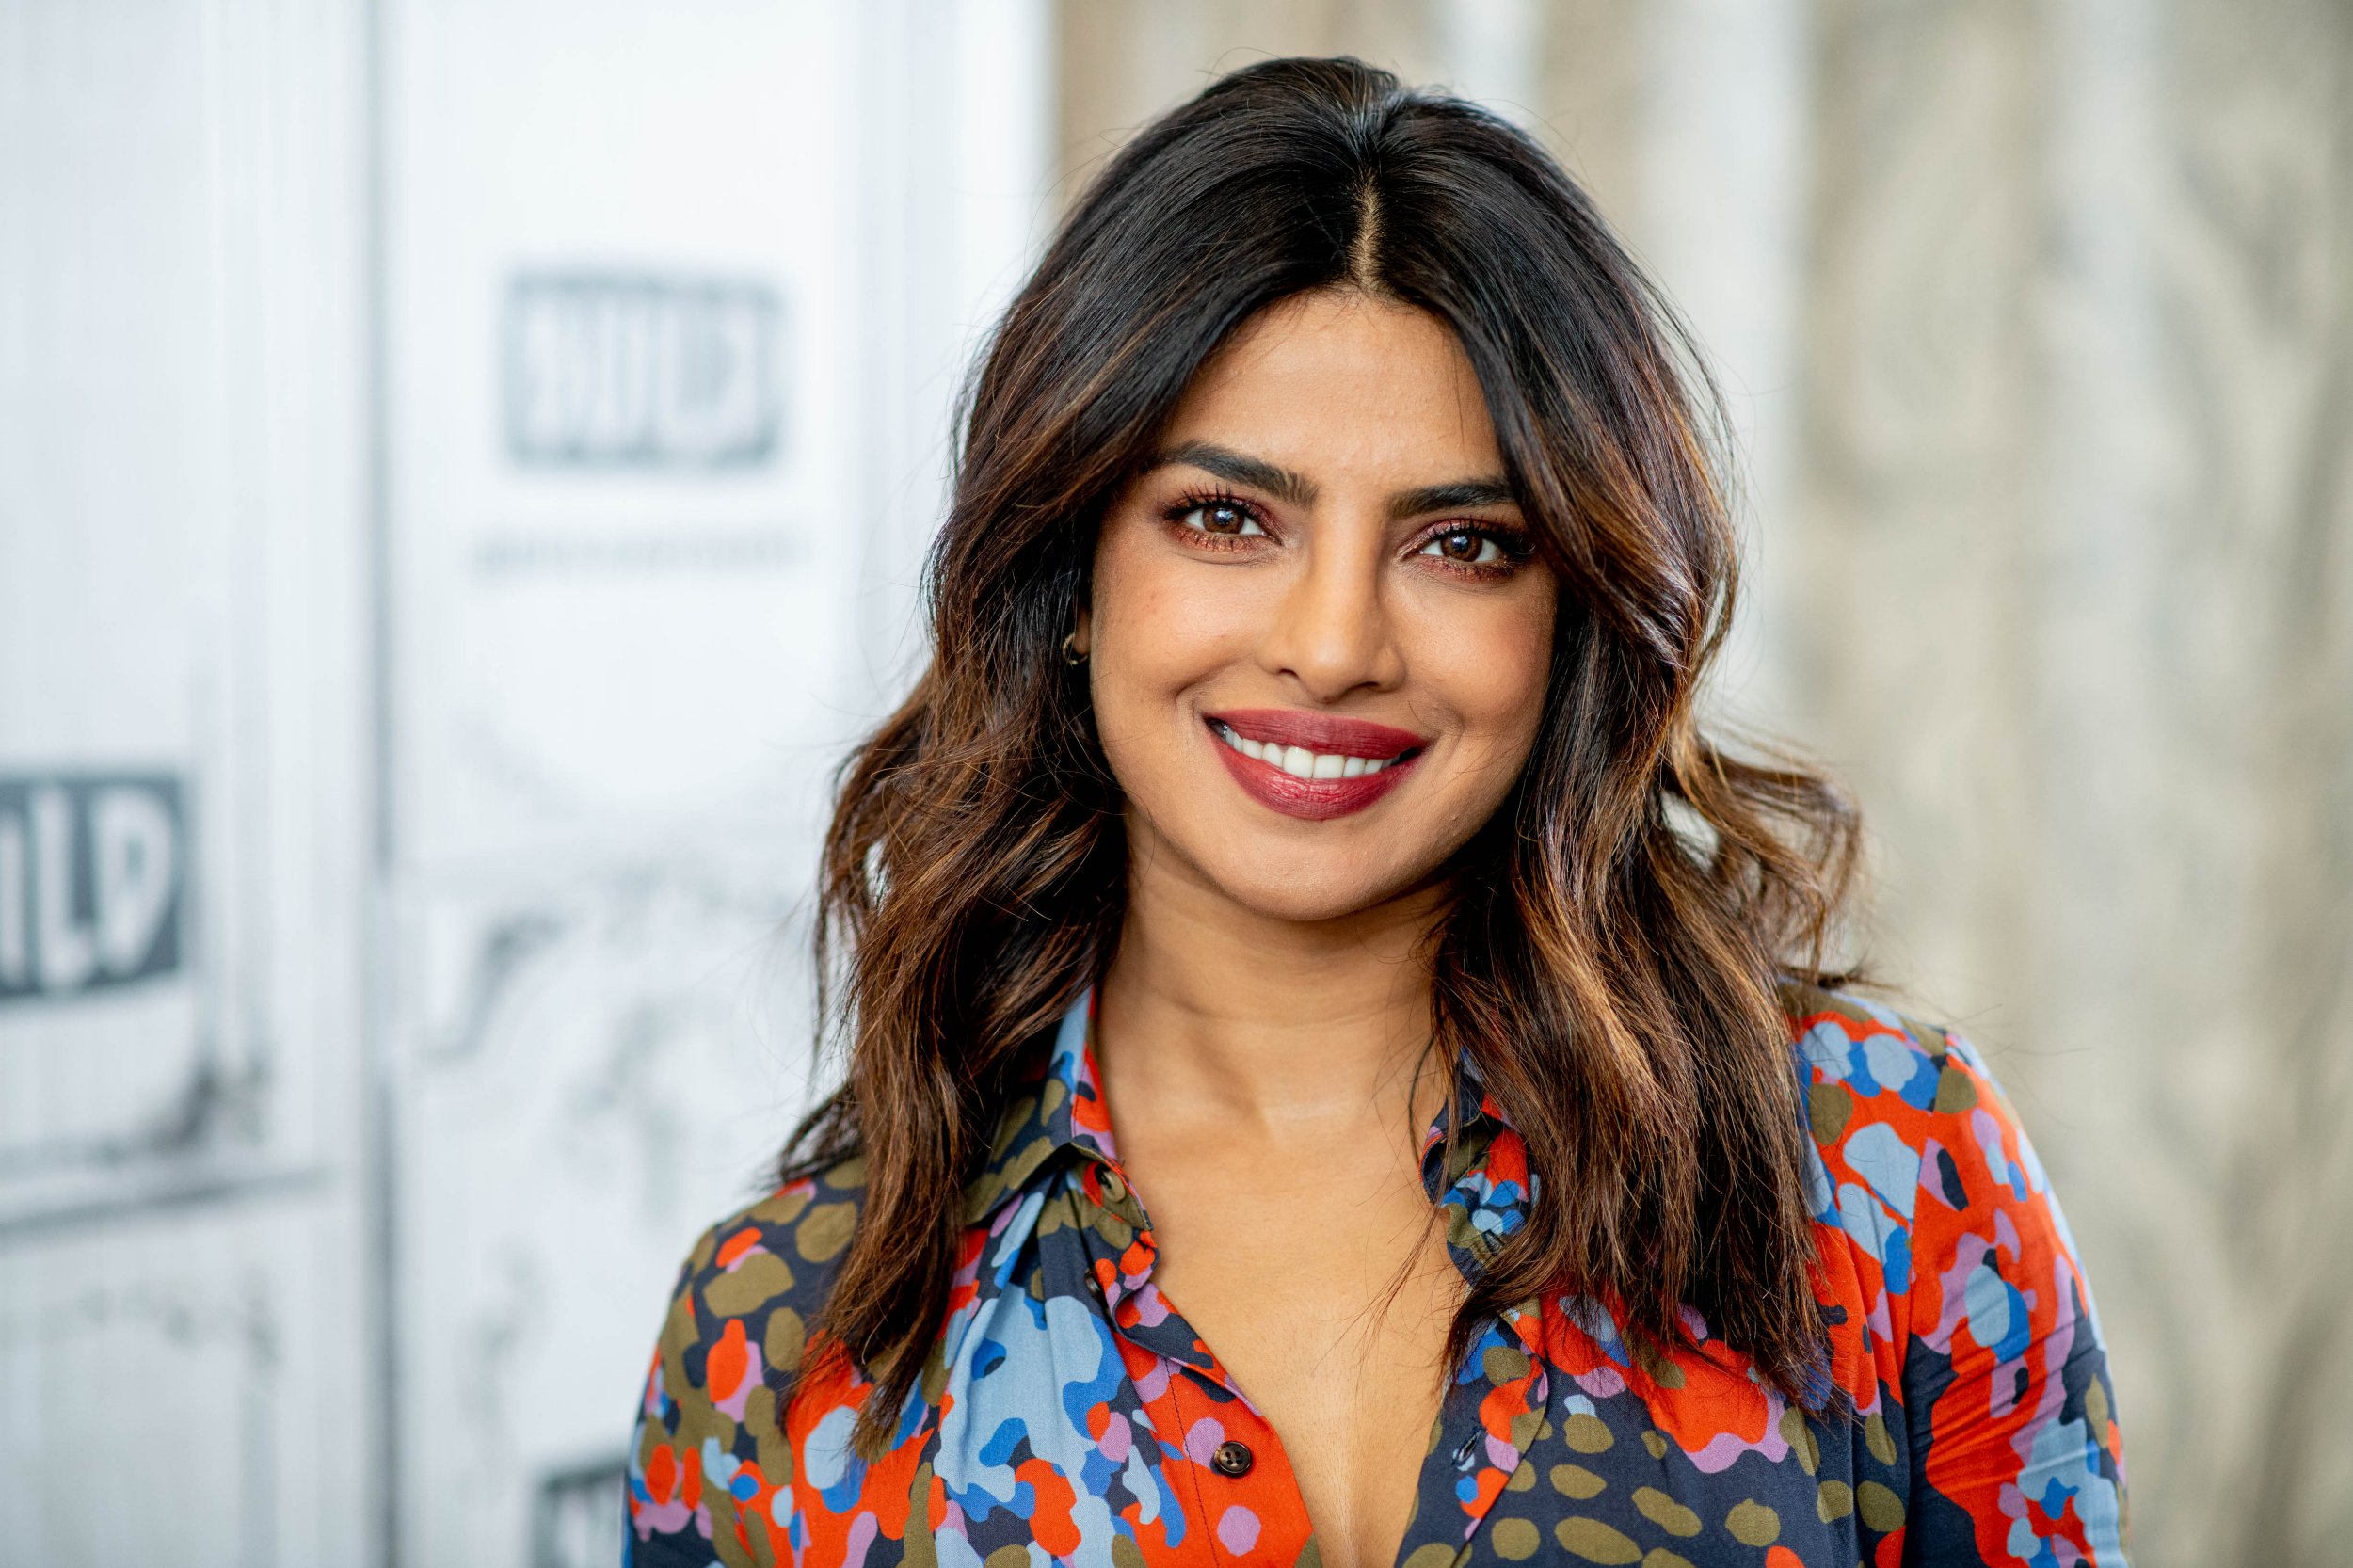 Priyanka Chopra is not here for Bollywood's 'obsession' with Hollywood